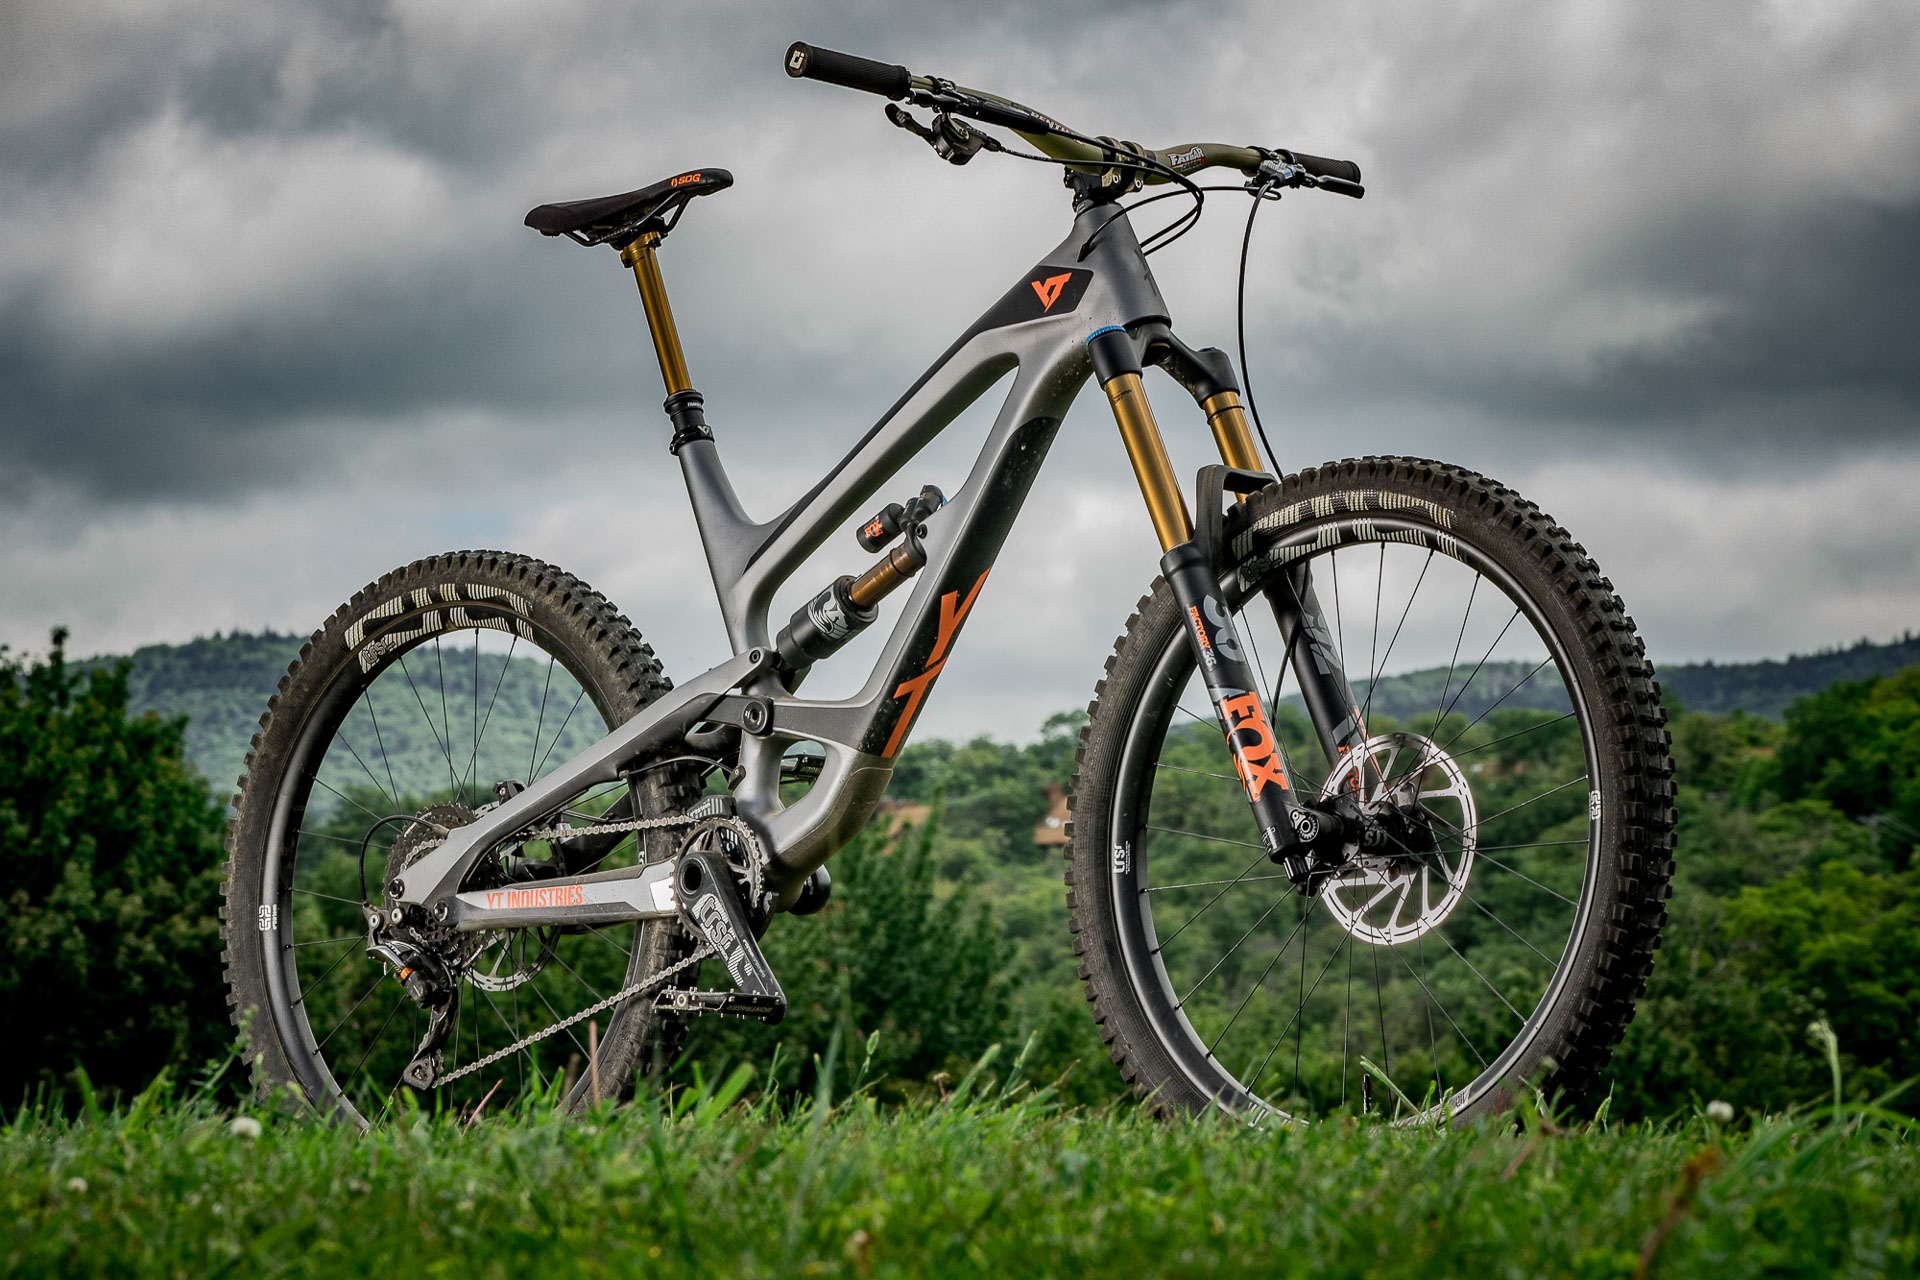 fbdd5d01488 Tested: YT Capra Pro Race Long-Travel 27.5 Mountain Bike | Bike Magazine